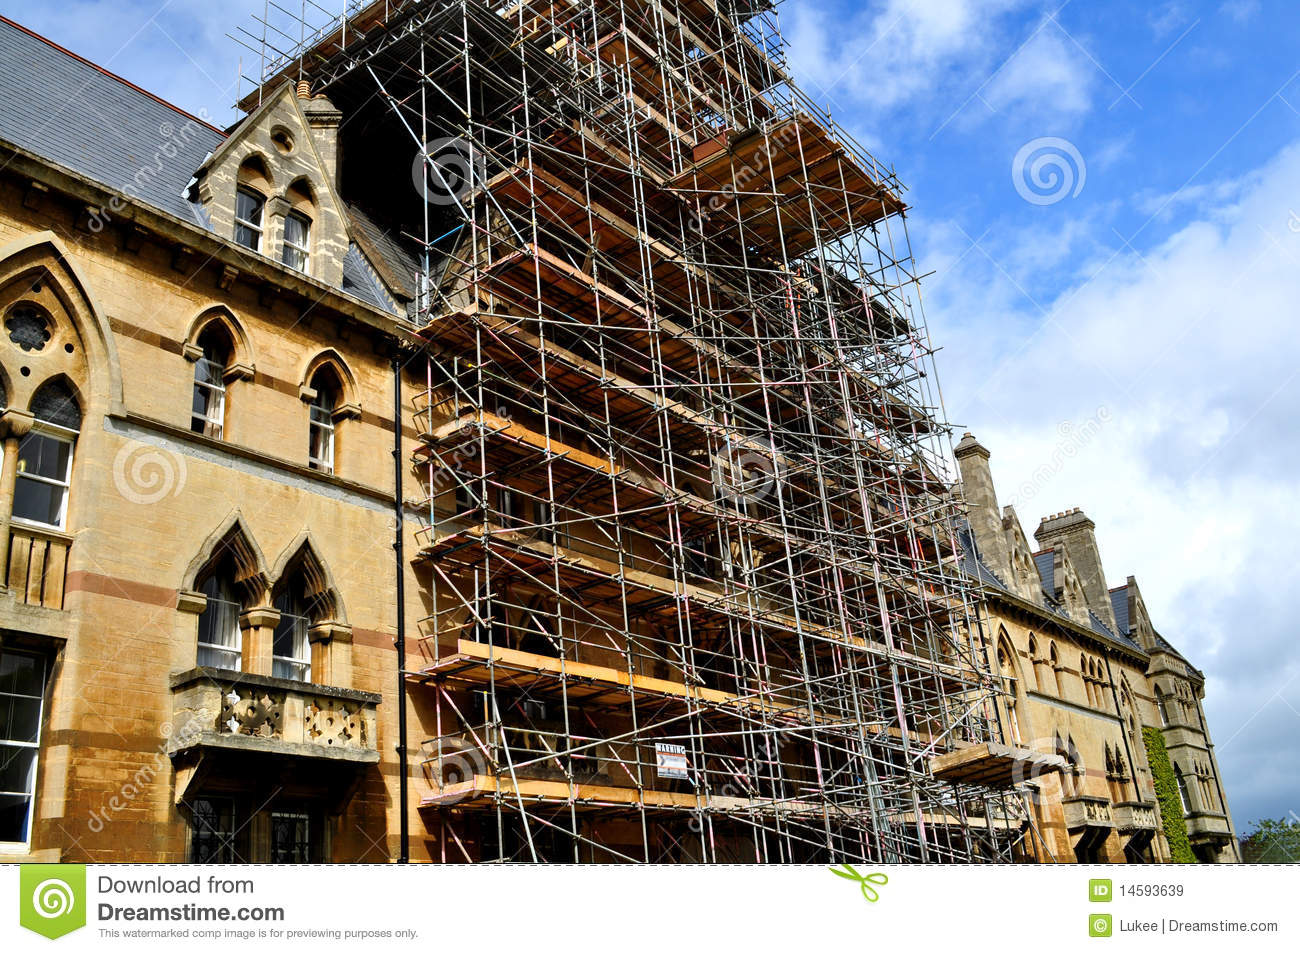 ... for restoration of an old building of Christ church College in Oxford